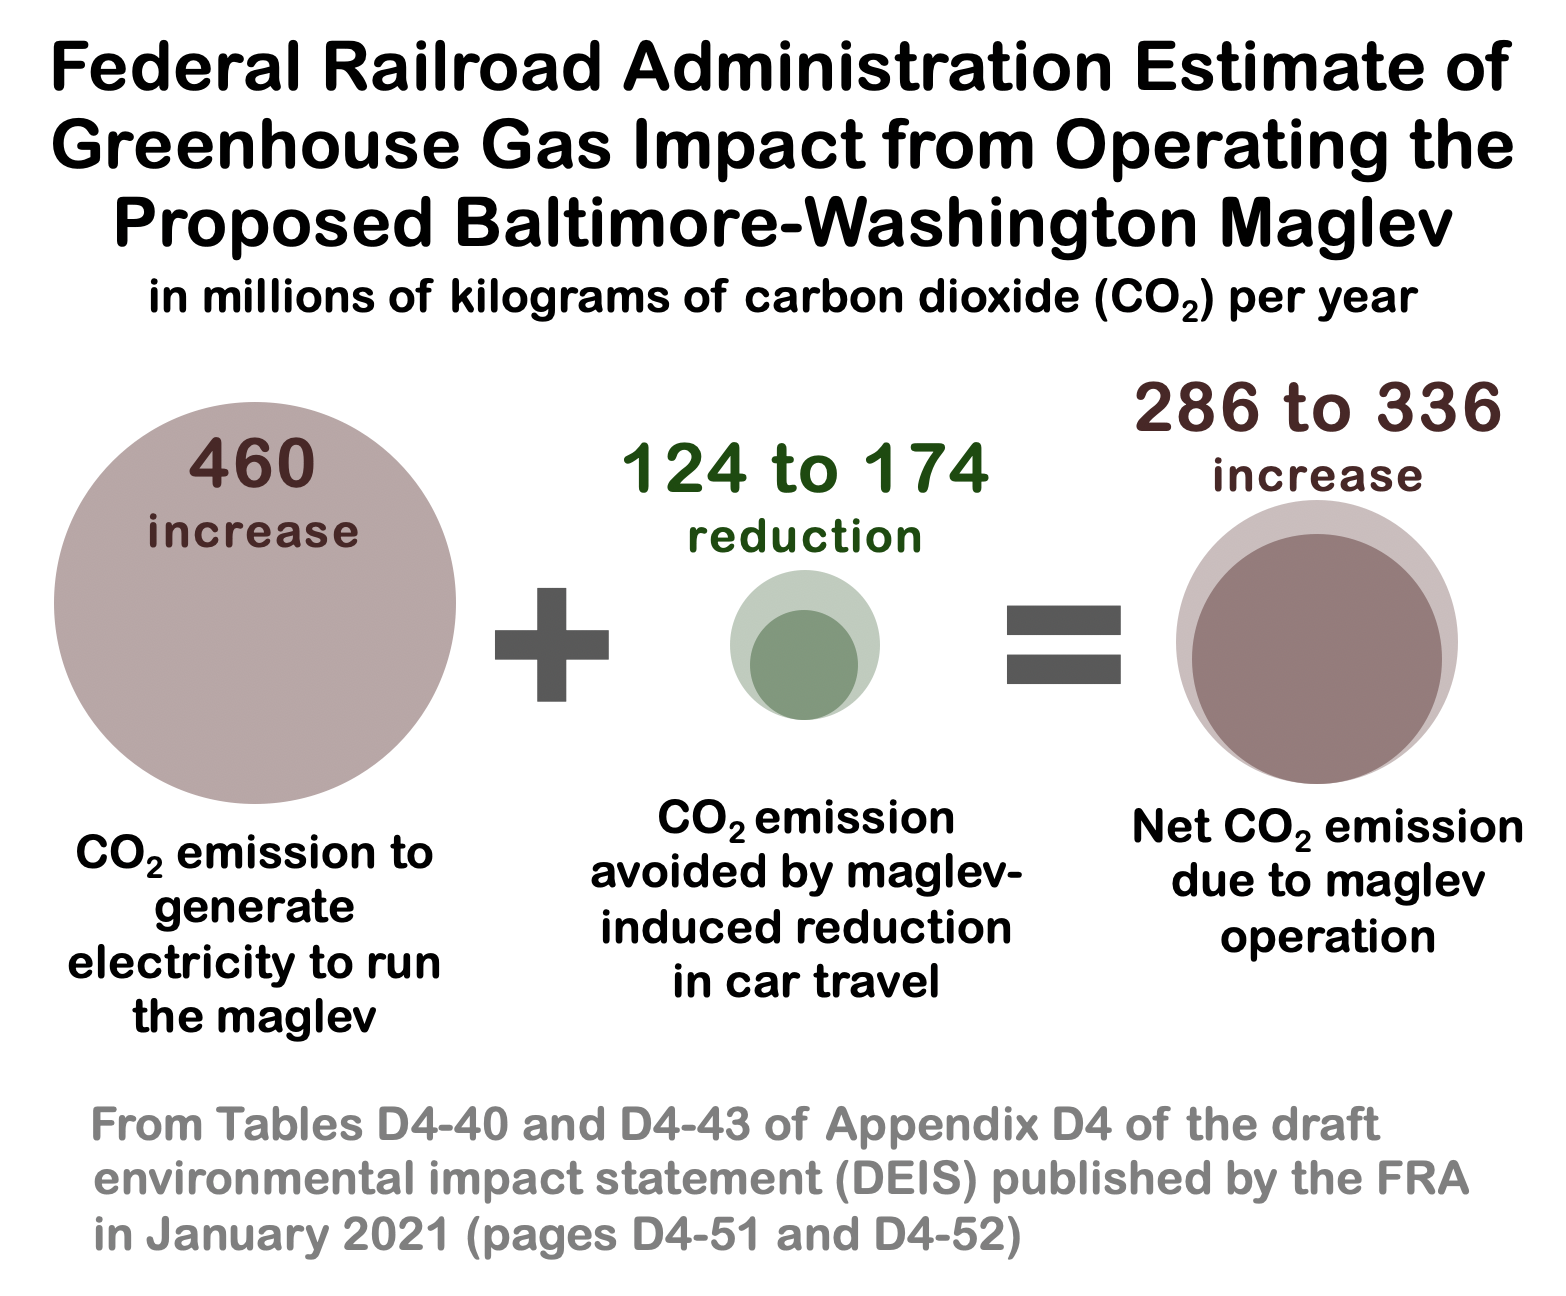 Schematic diagram showing calculation of net emissions increase due to maglev operation